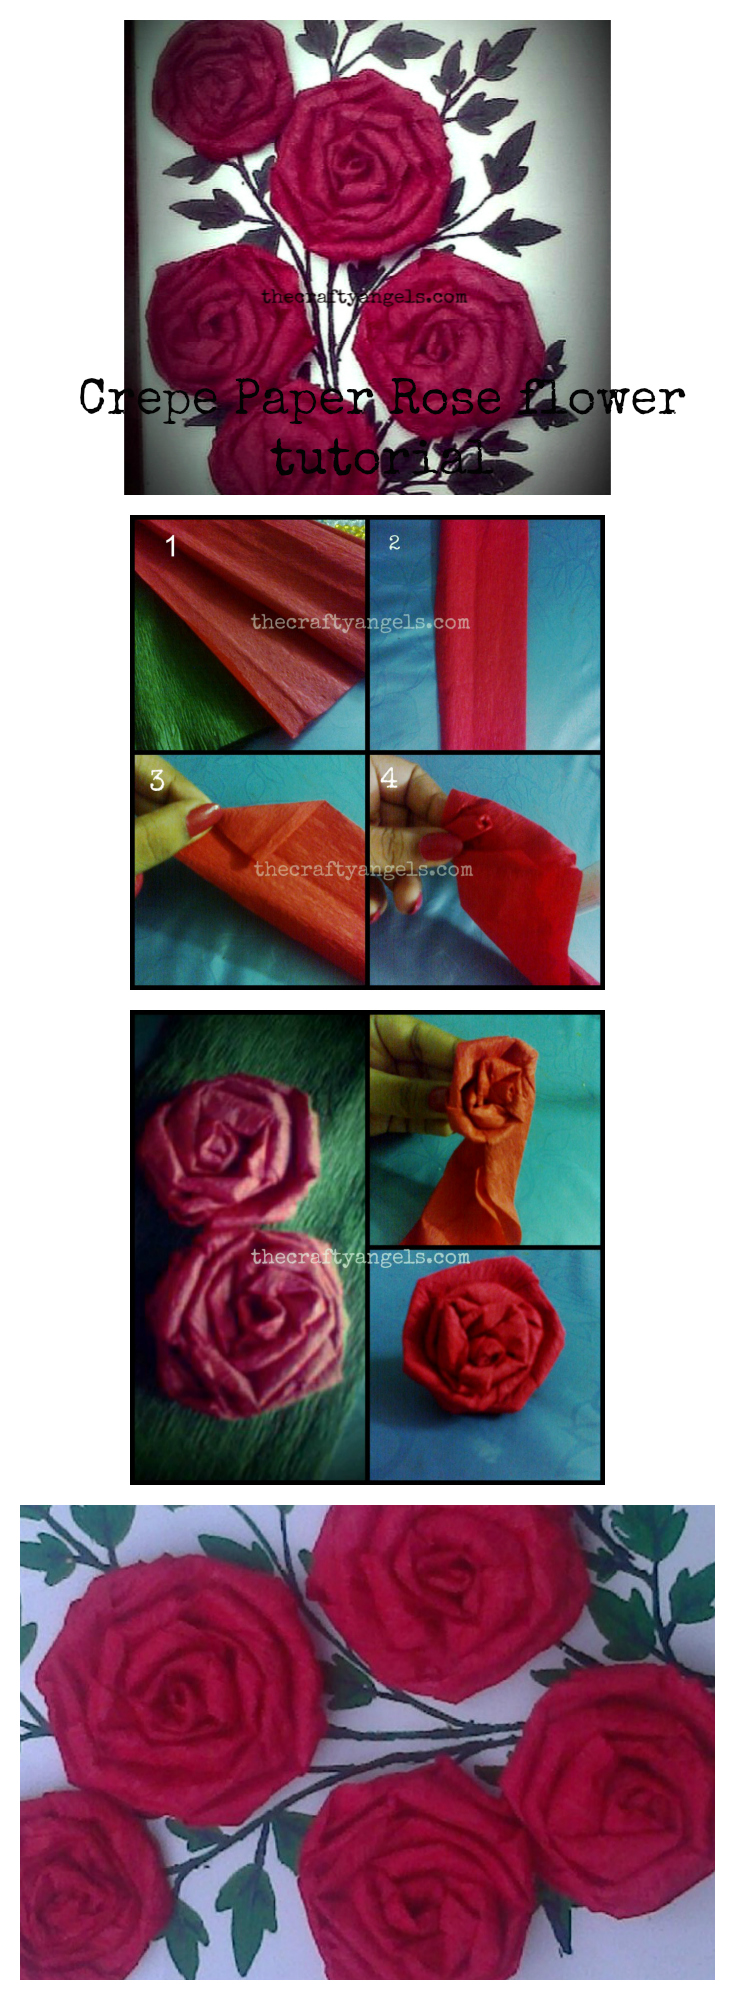 Crepe paper rose flower tutorial collage